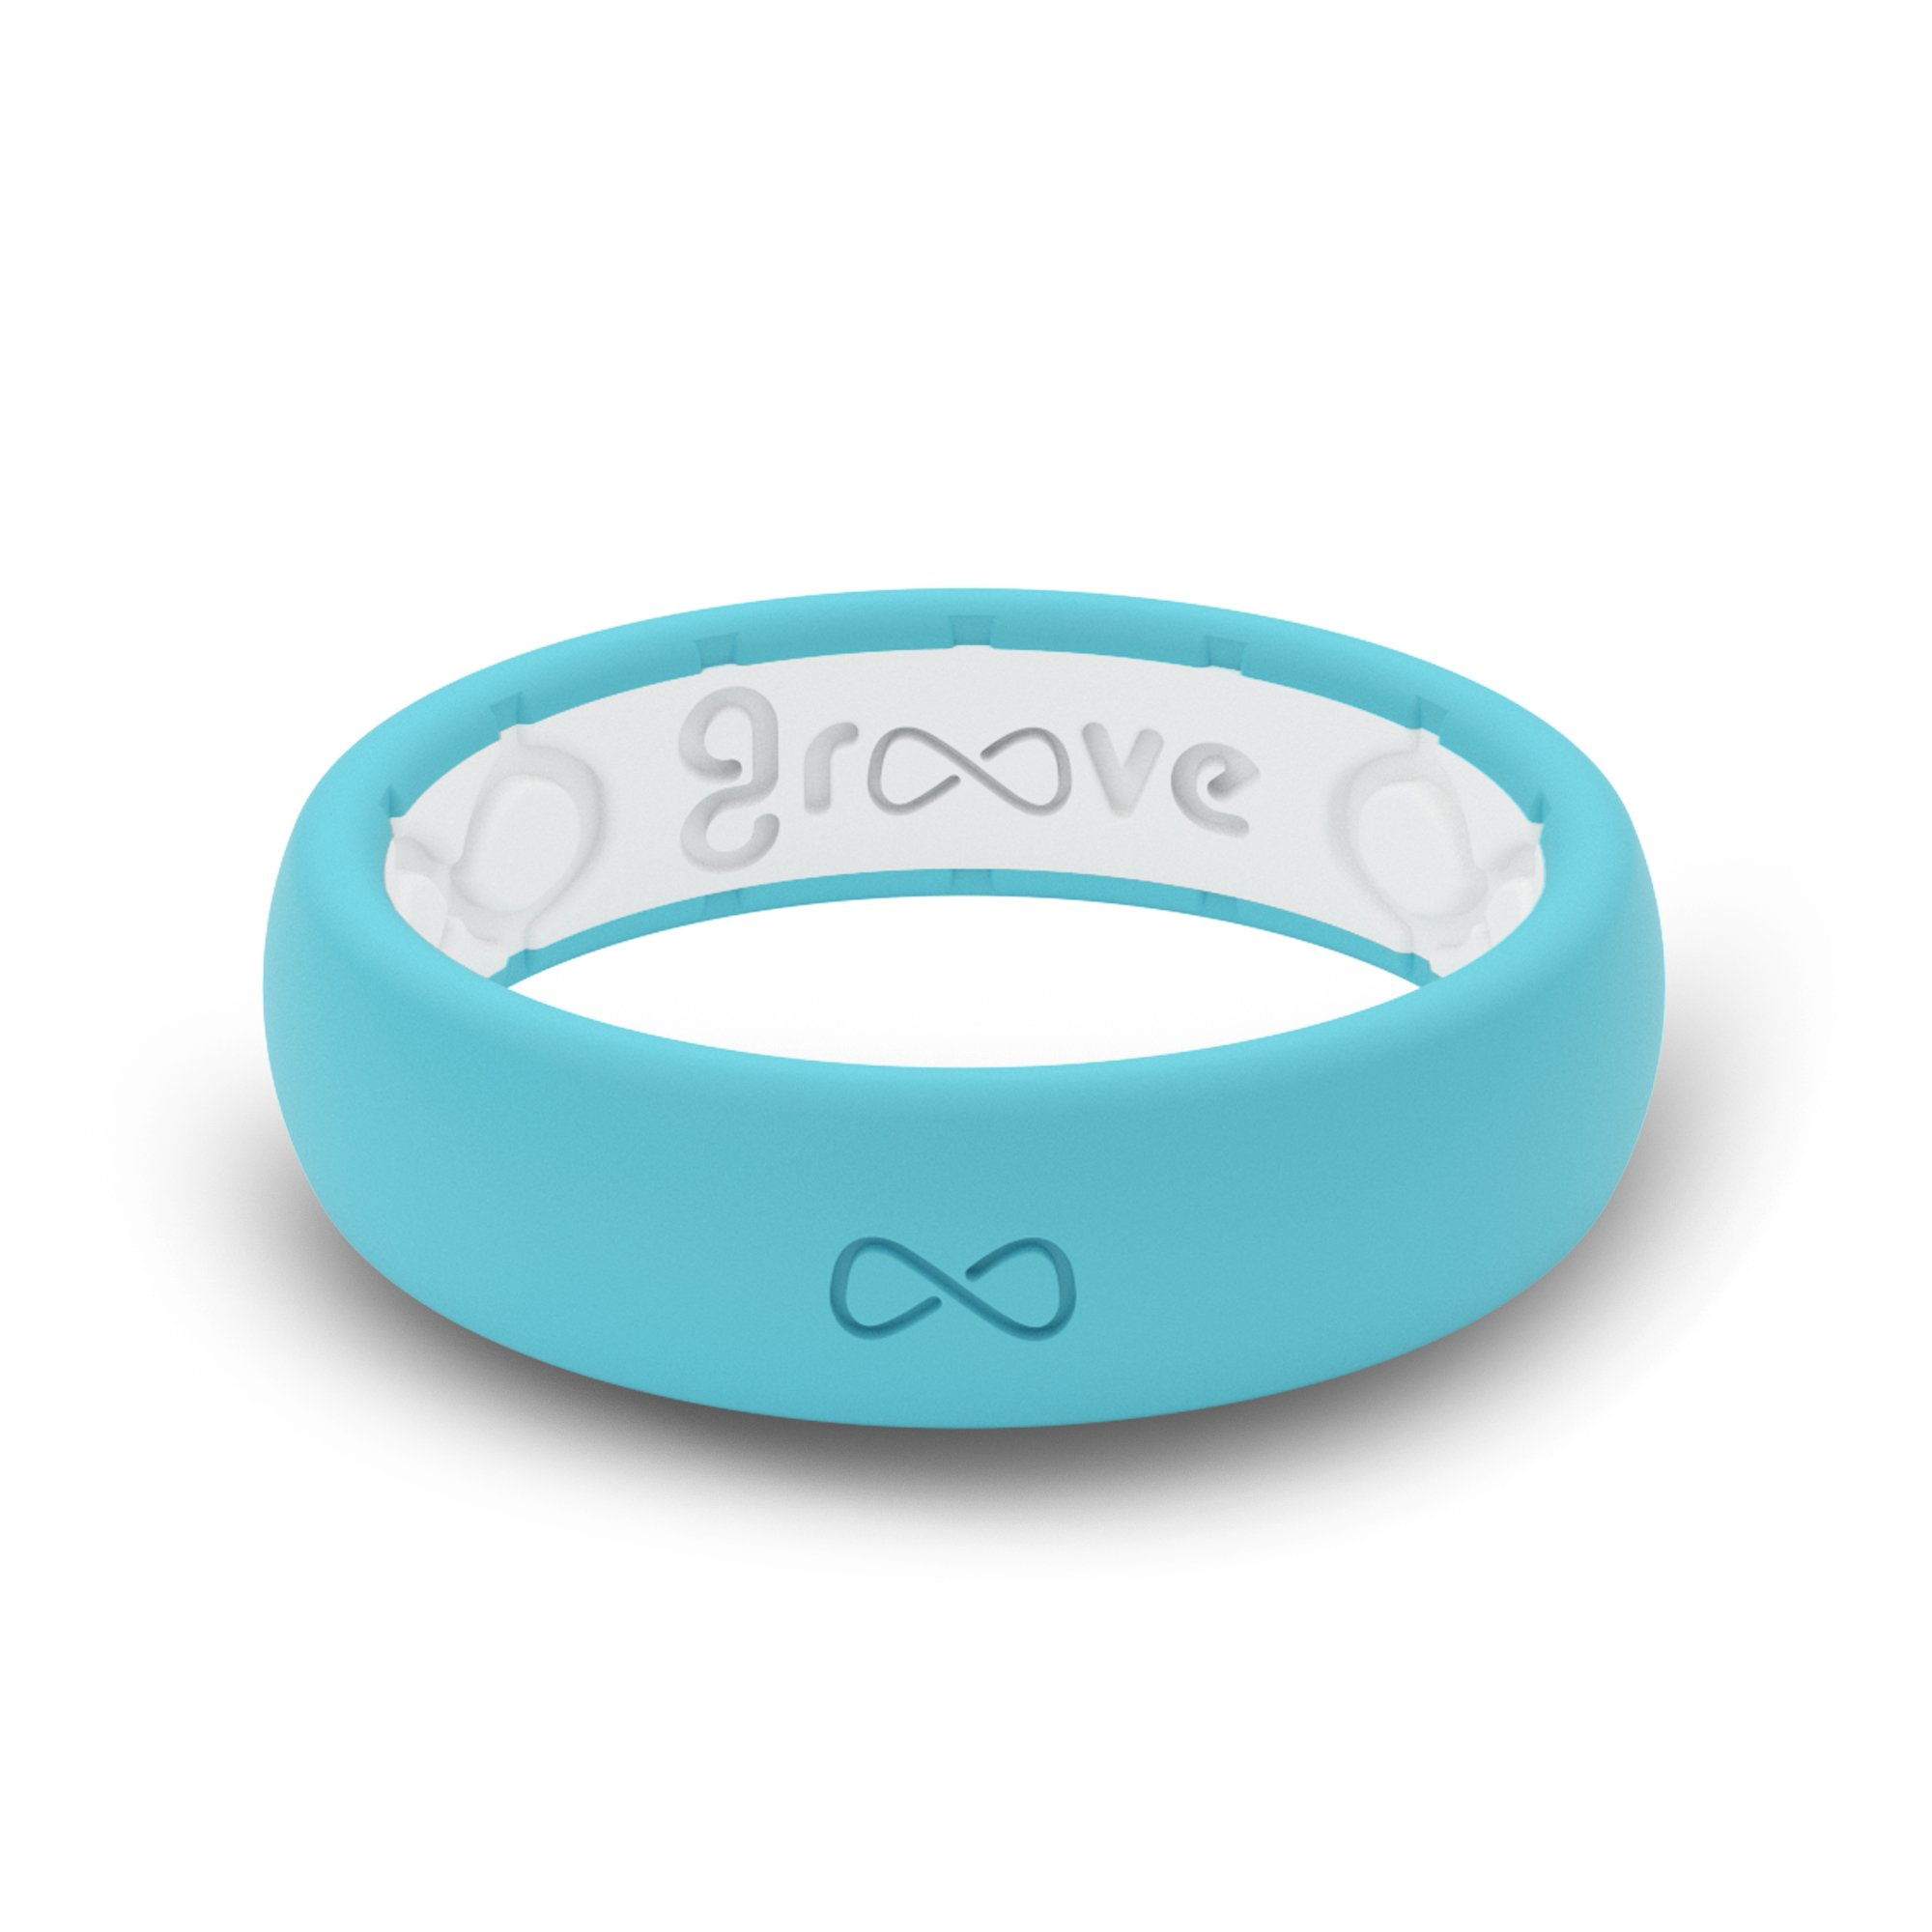 Groove Plus Life - Groove Ring The World's First Breathable Silicone Ring Thin (Turquoise/Snow White) (Size 8)